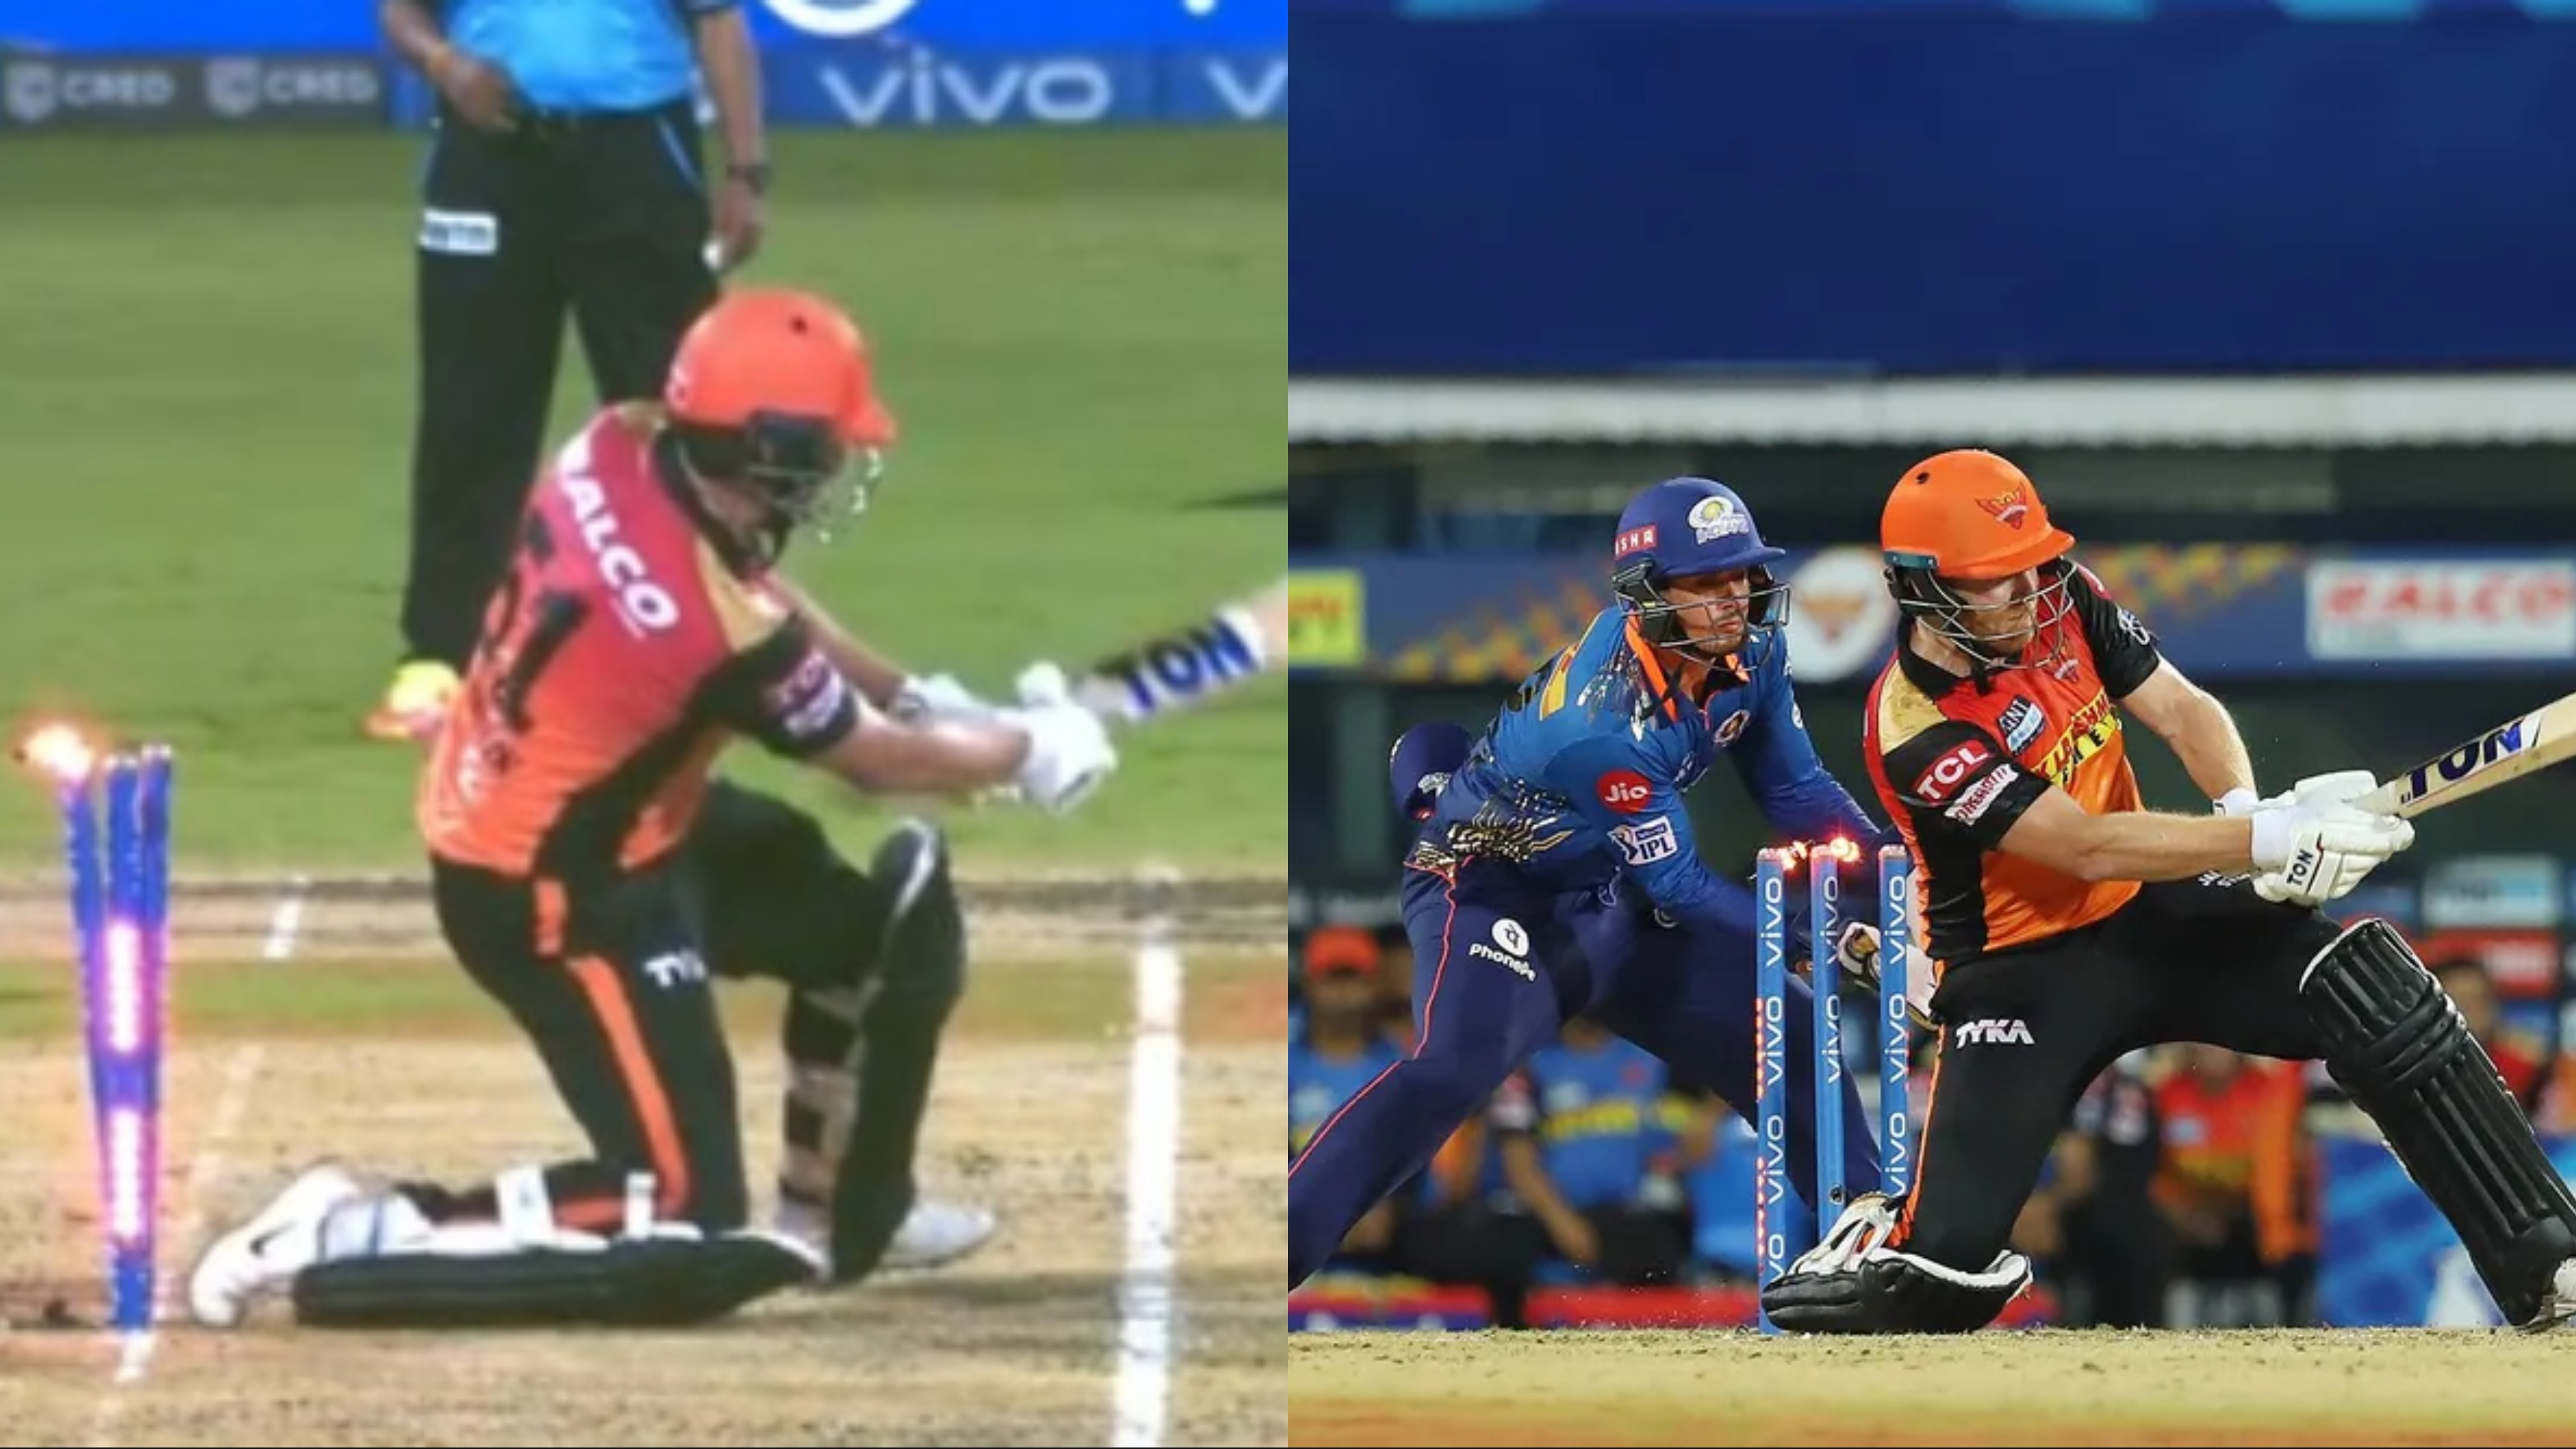 WATCH: Jonny Bairstow unfortunately gets hit wicket in IPL 2021